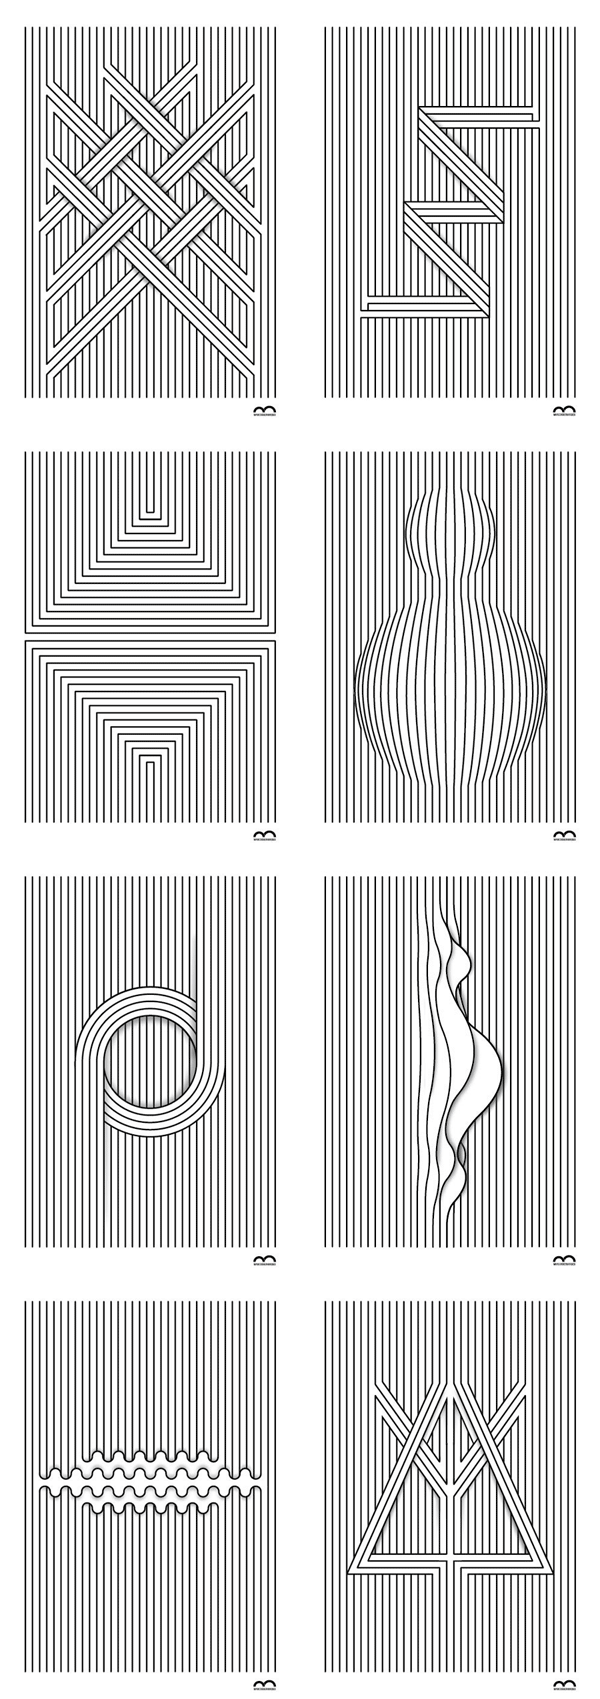 Linea - Simple Graphic Line Illustrations. Marcos Bernardes is working as a graphic designer, illustrator, and toy designer in Santa Catarina, Brazil. This